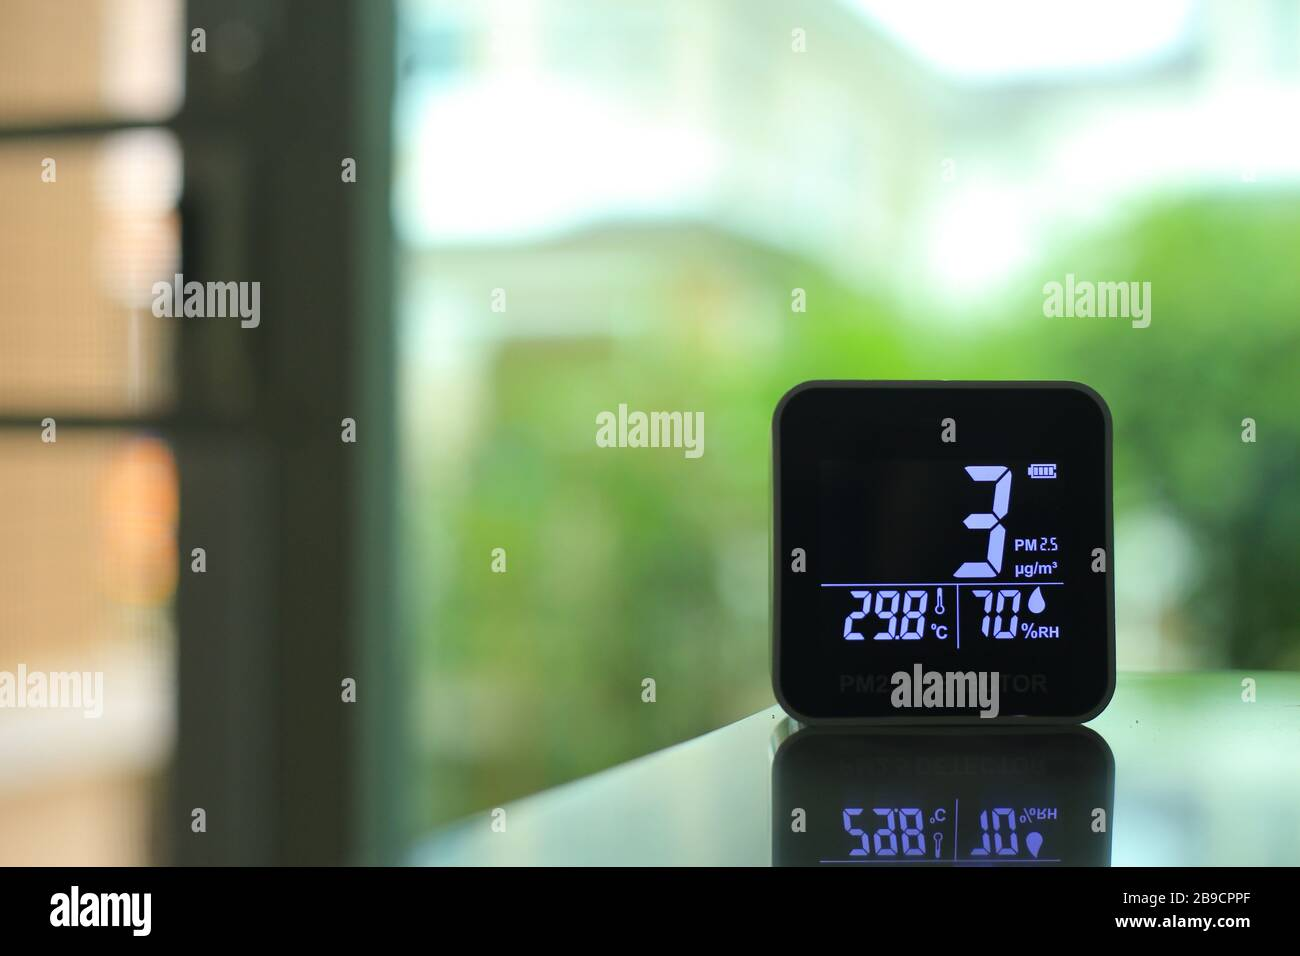 air quality sensor placing on a table indoor. sensor found small amount of air pollution of PM 2.5 the poisonous harmful particulate matter invisible Stock Photo